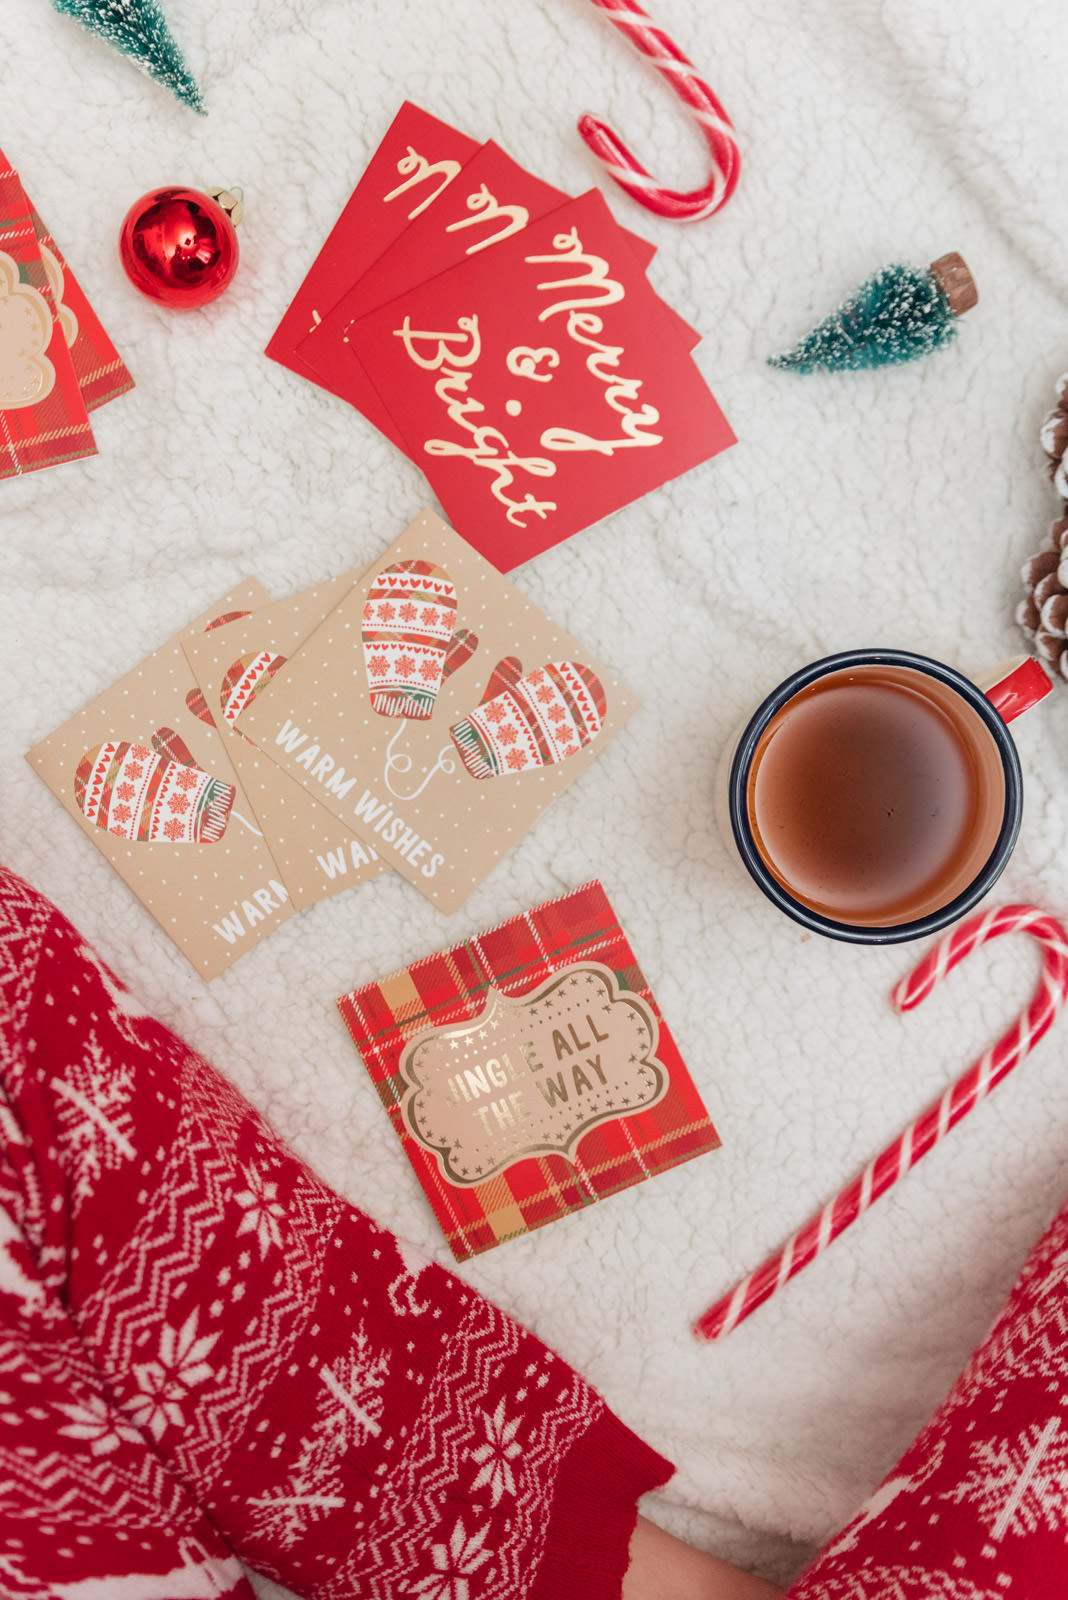 Blog-Mode-And-The-City-Lifestyle-Cinq-Petites-Choses-243-cartes-noel